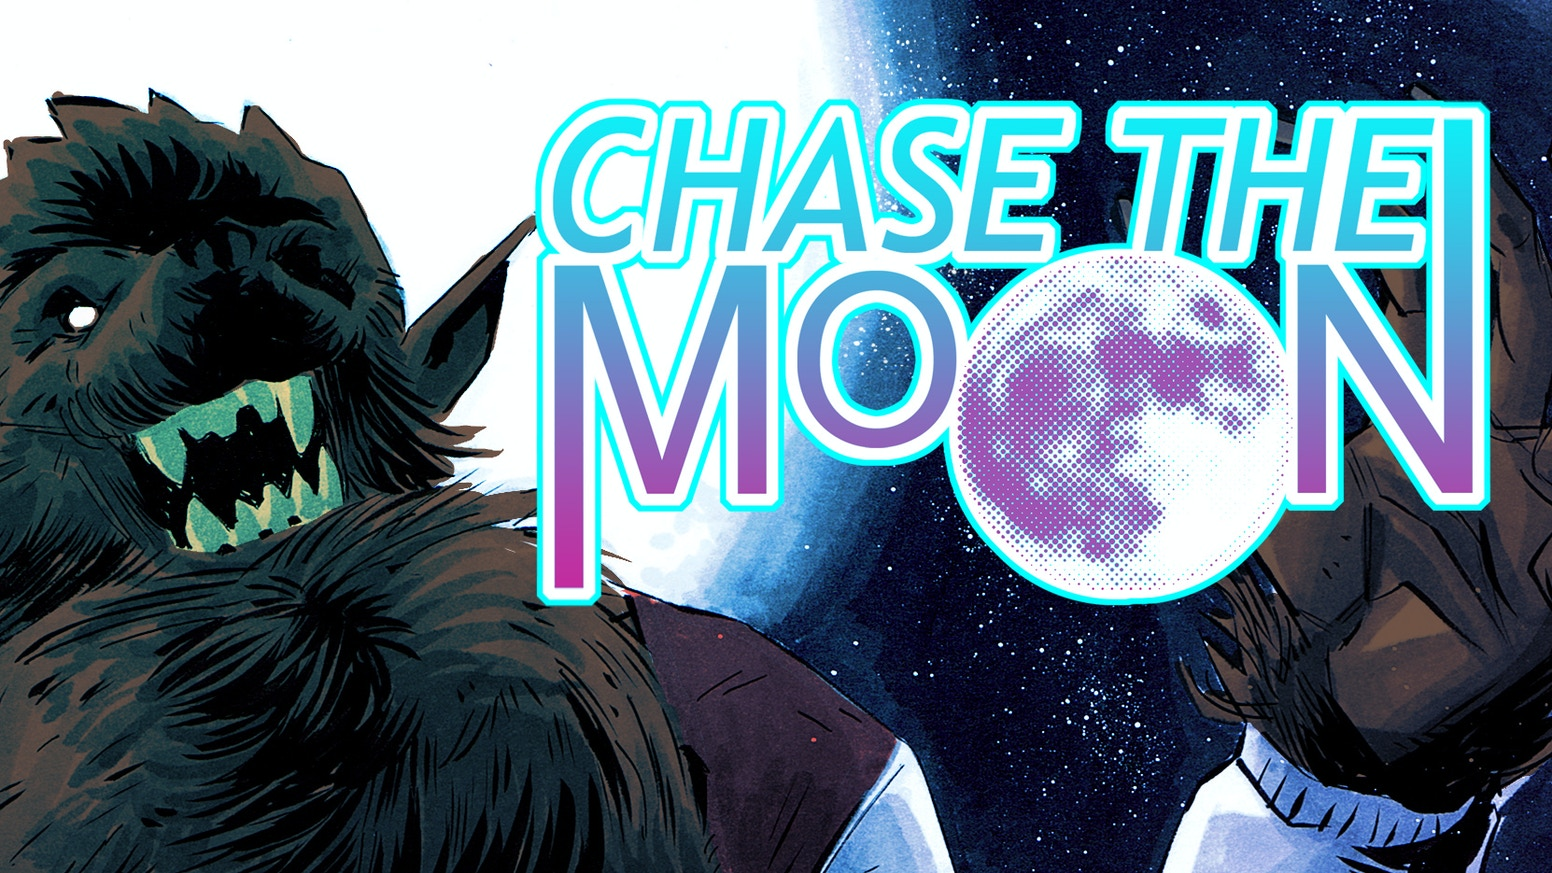 Chase the Moon is a 100-page Graphic novel about two crazy kids in love in the middle of an all-out, citywide monster gang war.